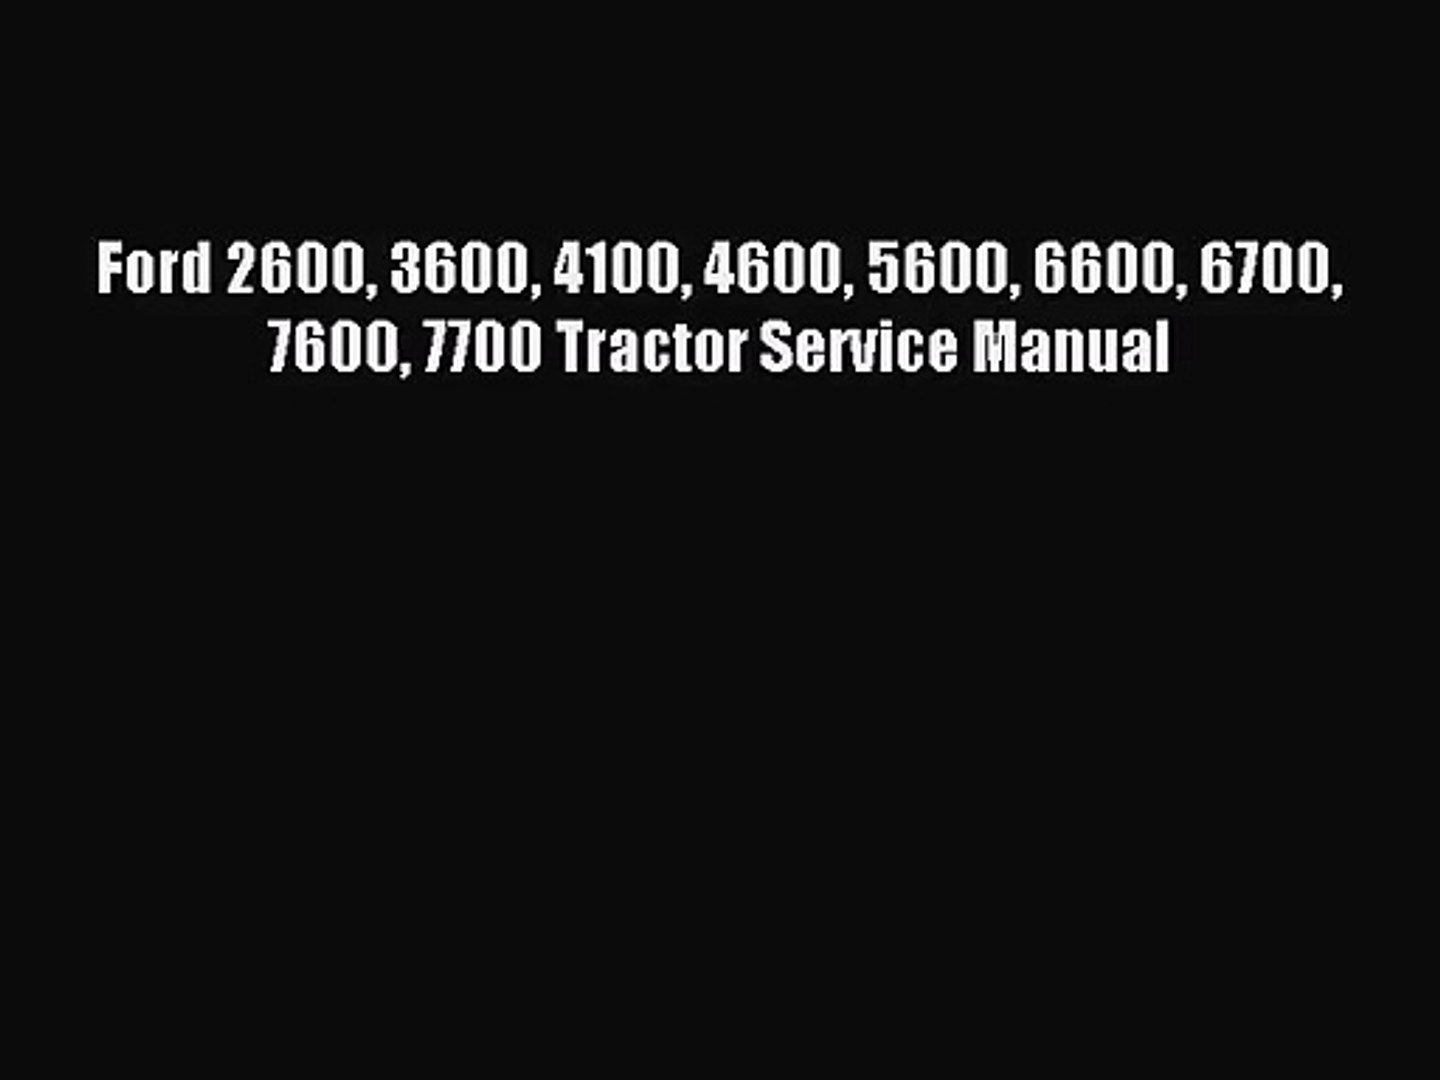 [PDF Download] Ford 2600 3600 4100 4600 5600 6600 6700 7600 7700 Tractor on 8n ford tractor steering parts diagram, ford 3600 tractor data, 601 ford tractor parts diagram, ford 4600 wiring schematic, ford 3930 wiring-diagram, ford 1600 tractor parts, ford 3000 electrical diagram, ford 3600 tractor transmission, ford 3600 tractor manual, ford 3600 diesel tractor, ford tractor electrical diagram, ford 3600 tractor fuel tank, ford 3600 tractor wheels, ford 3000 tractor injector pump diagram, ford 3600 tractor specifications, ford tractor hydraulic diagram, ford 5000 tractor specs, ford 3600 tractor oil filter, ford 3000 tractor ignition switch, ford 6610 wiring-diagram,